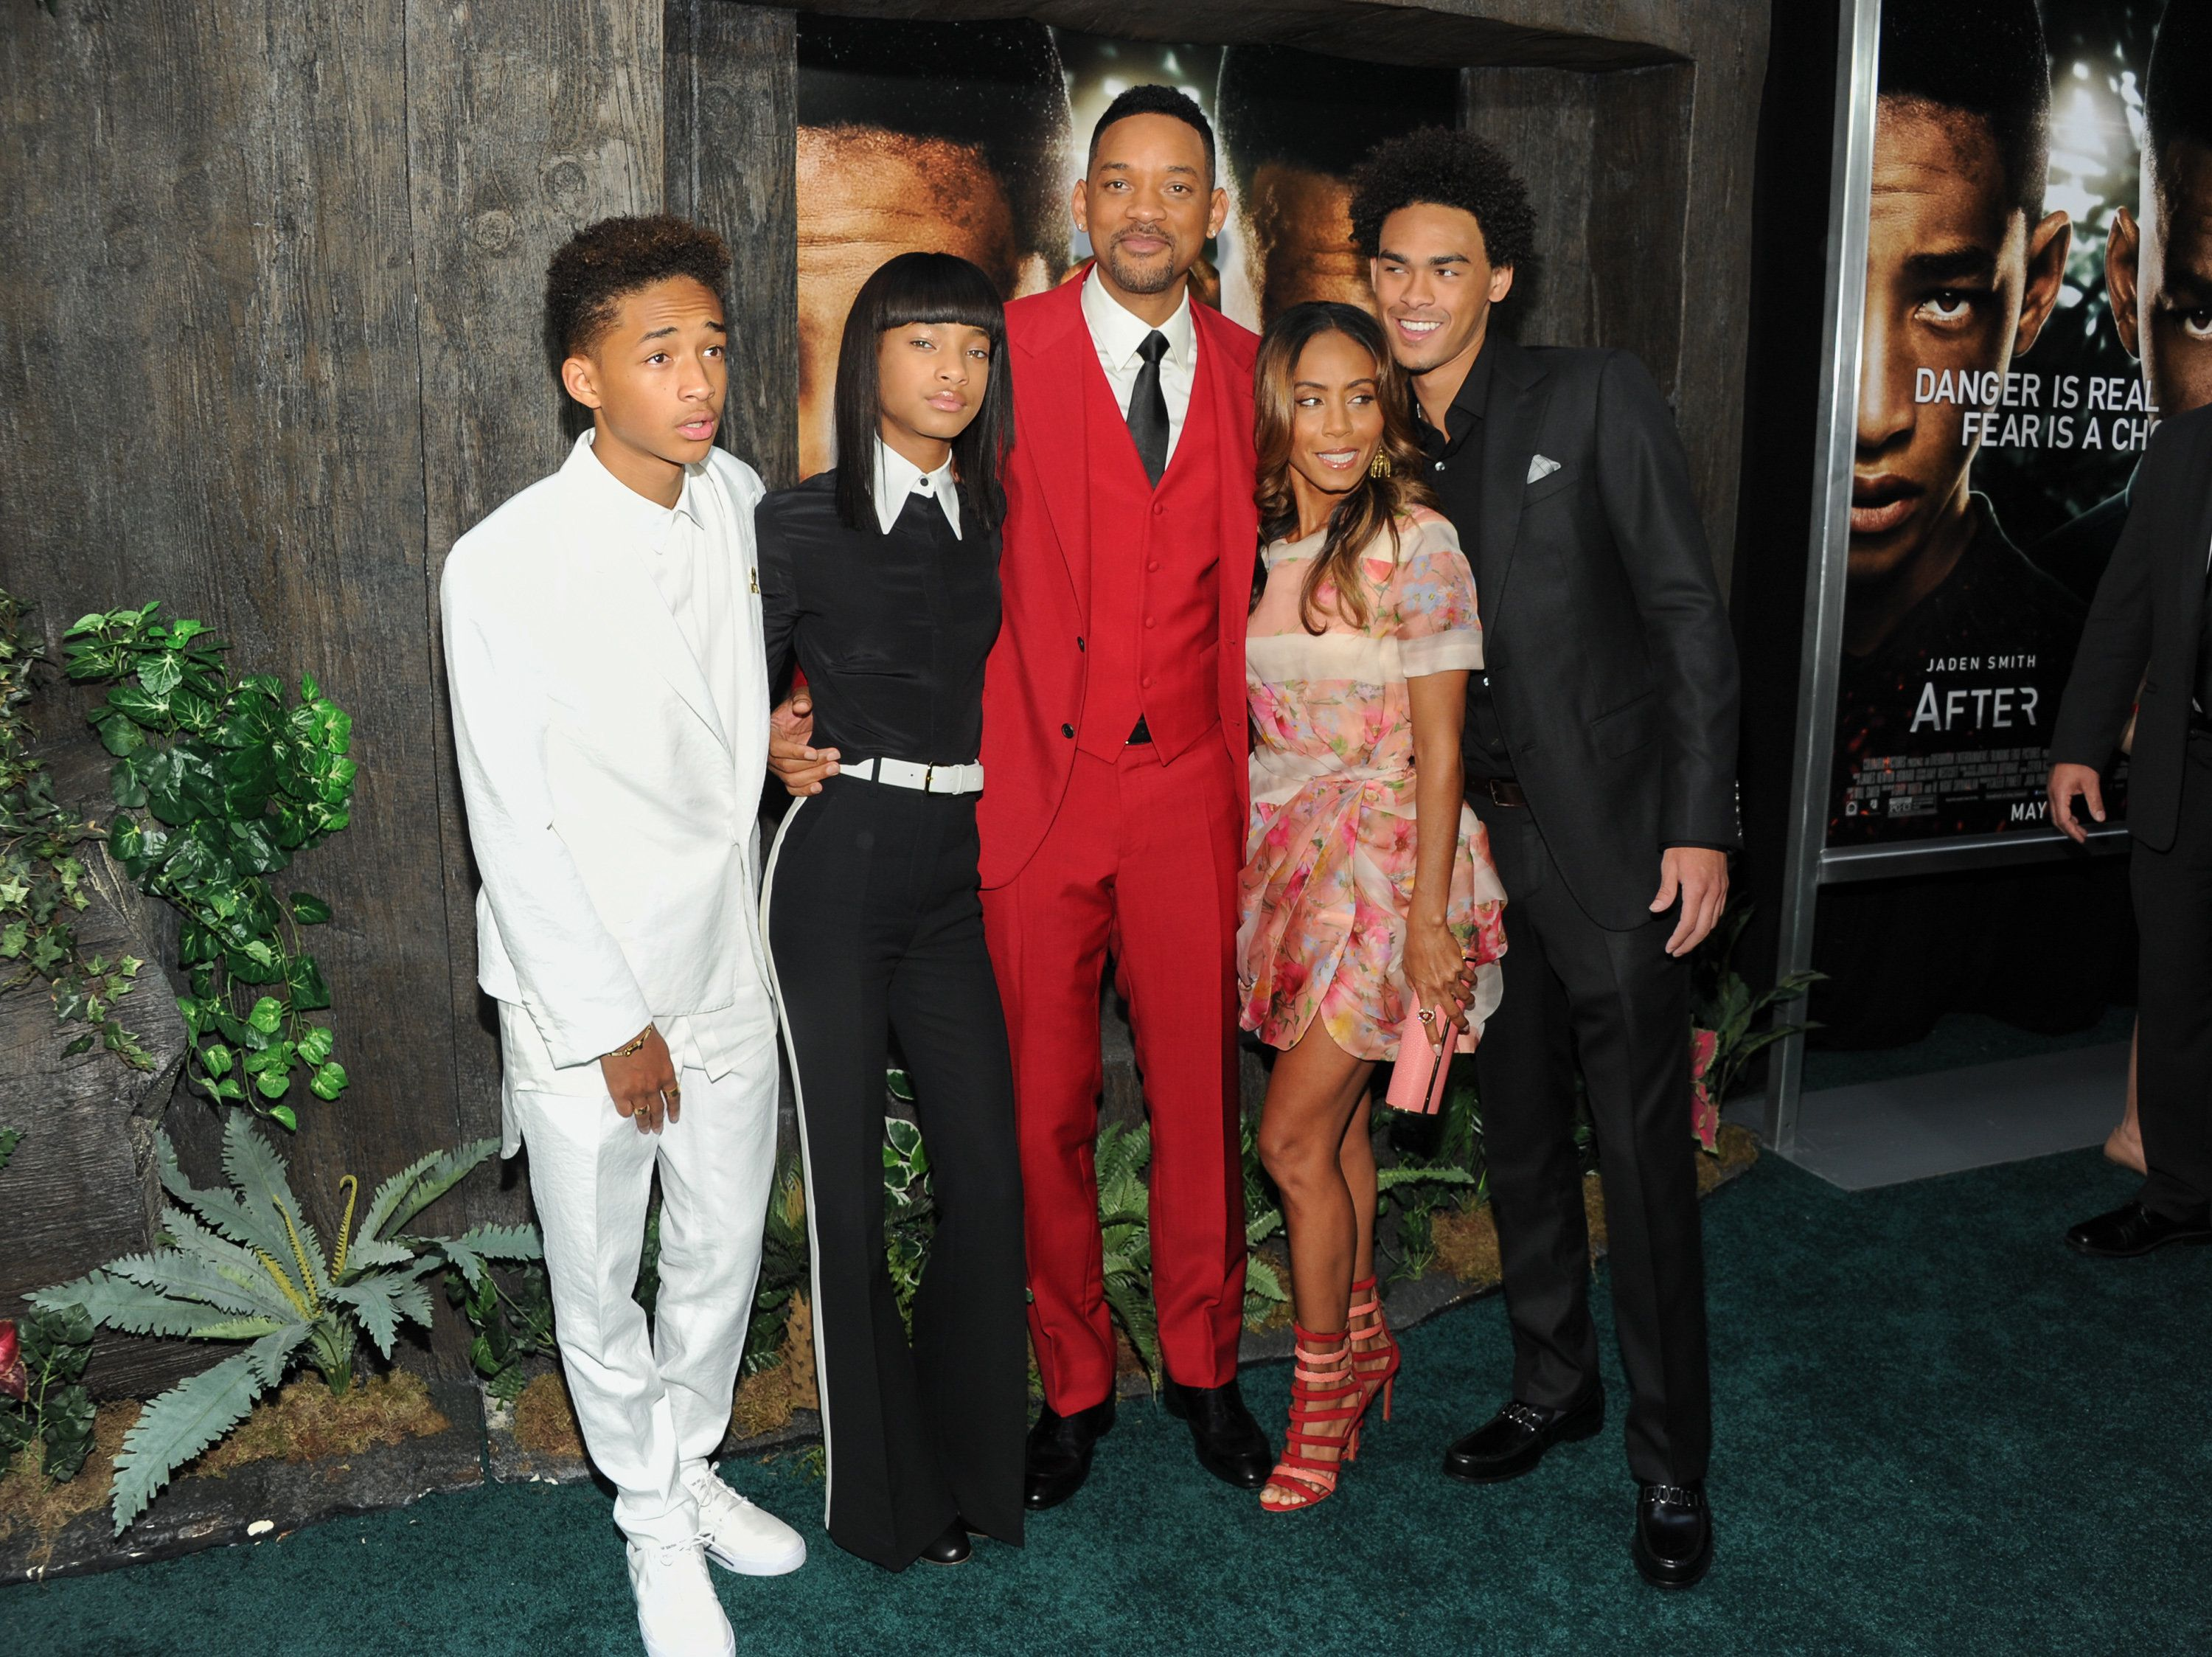 """Will Smith poses with his family, from left, Jaden Smith, Willow Smith, actress Jada Pinkett Smith and Trey Smith at the """"Aft"""